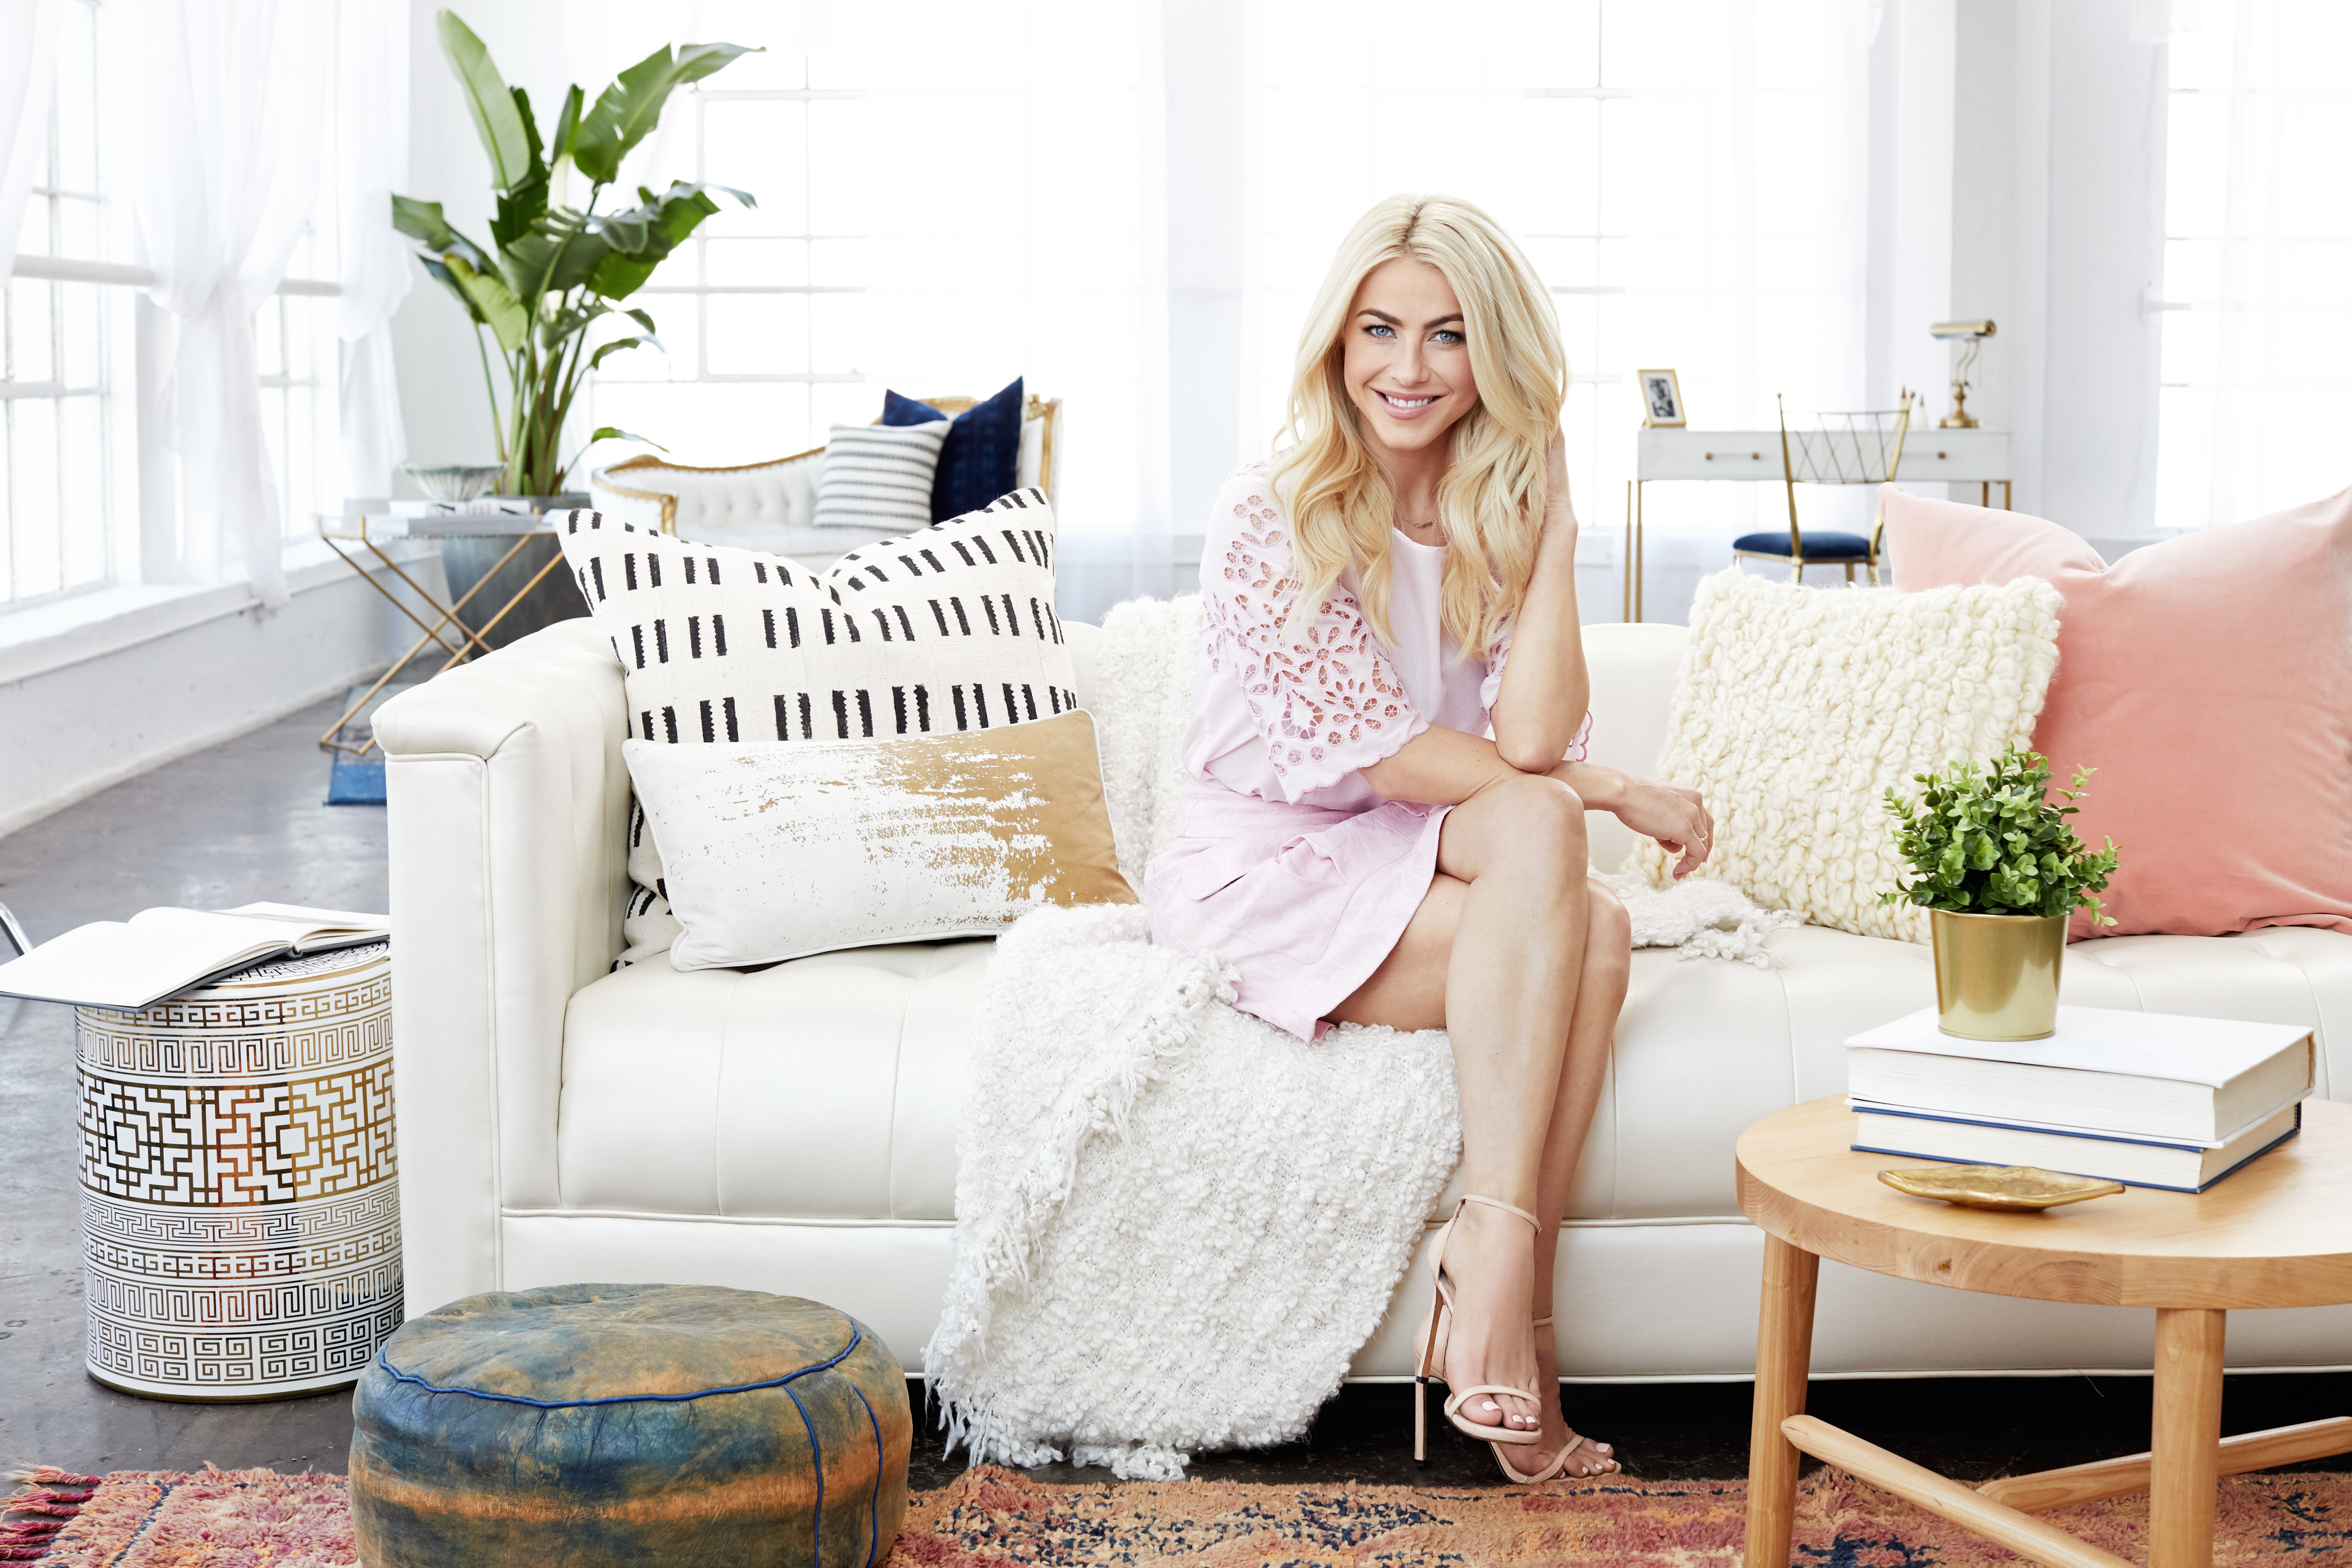 Inspiring Women: Julianne Hough Gets Candid About Living With Endometriosis